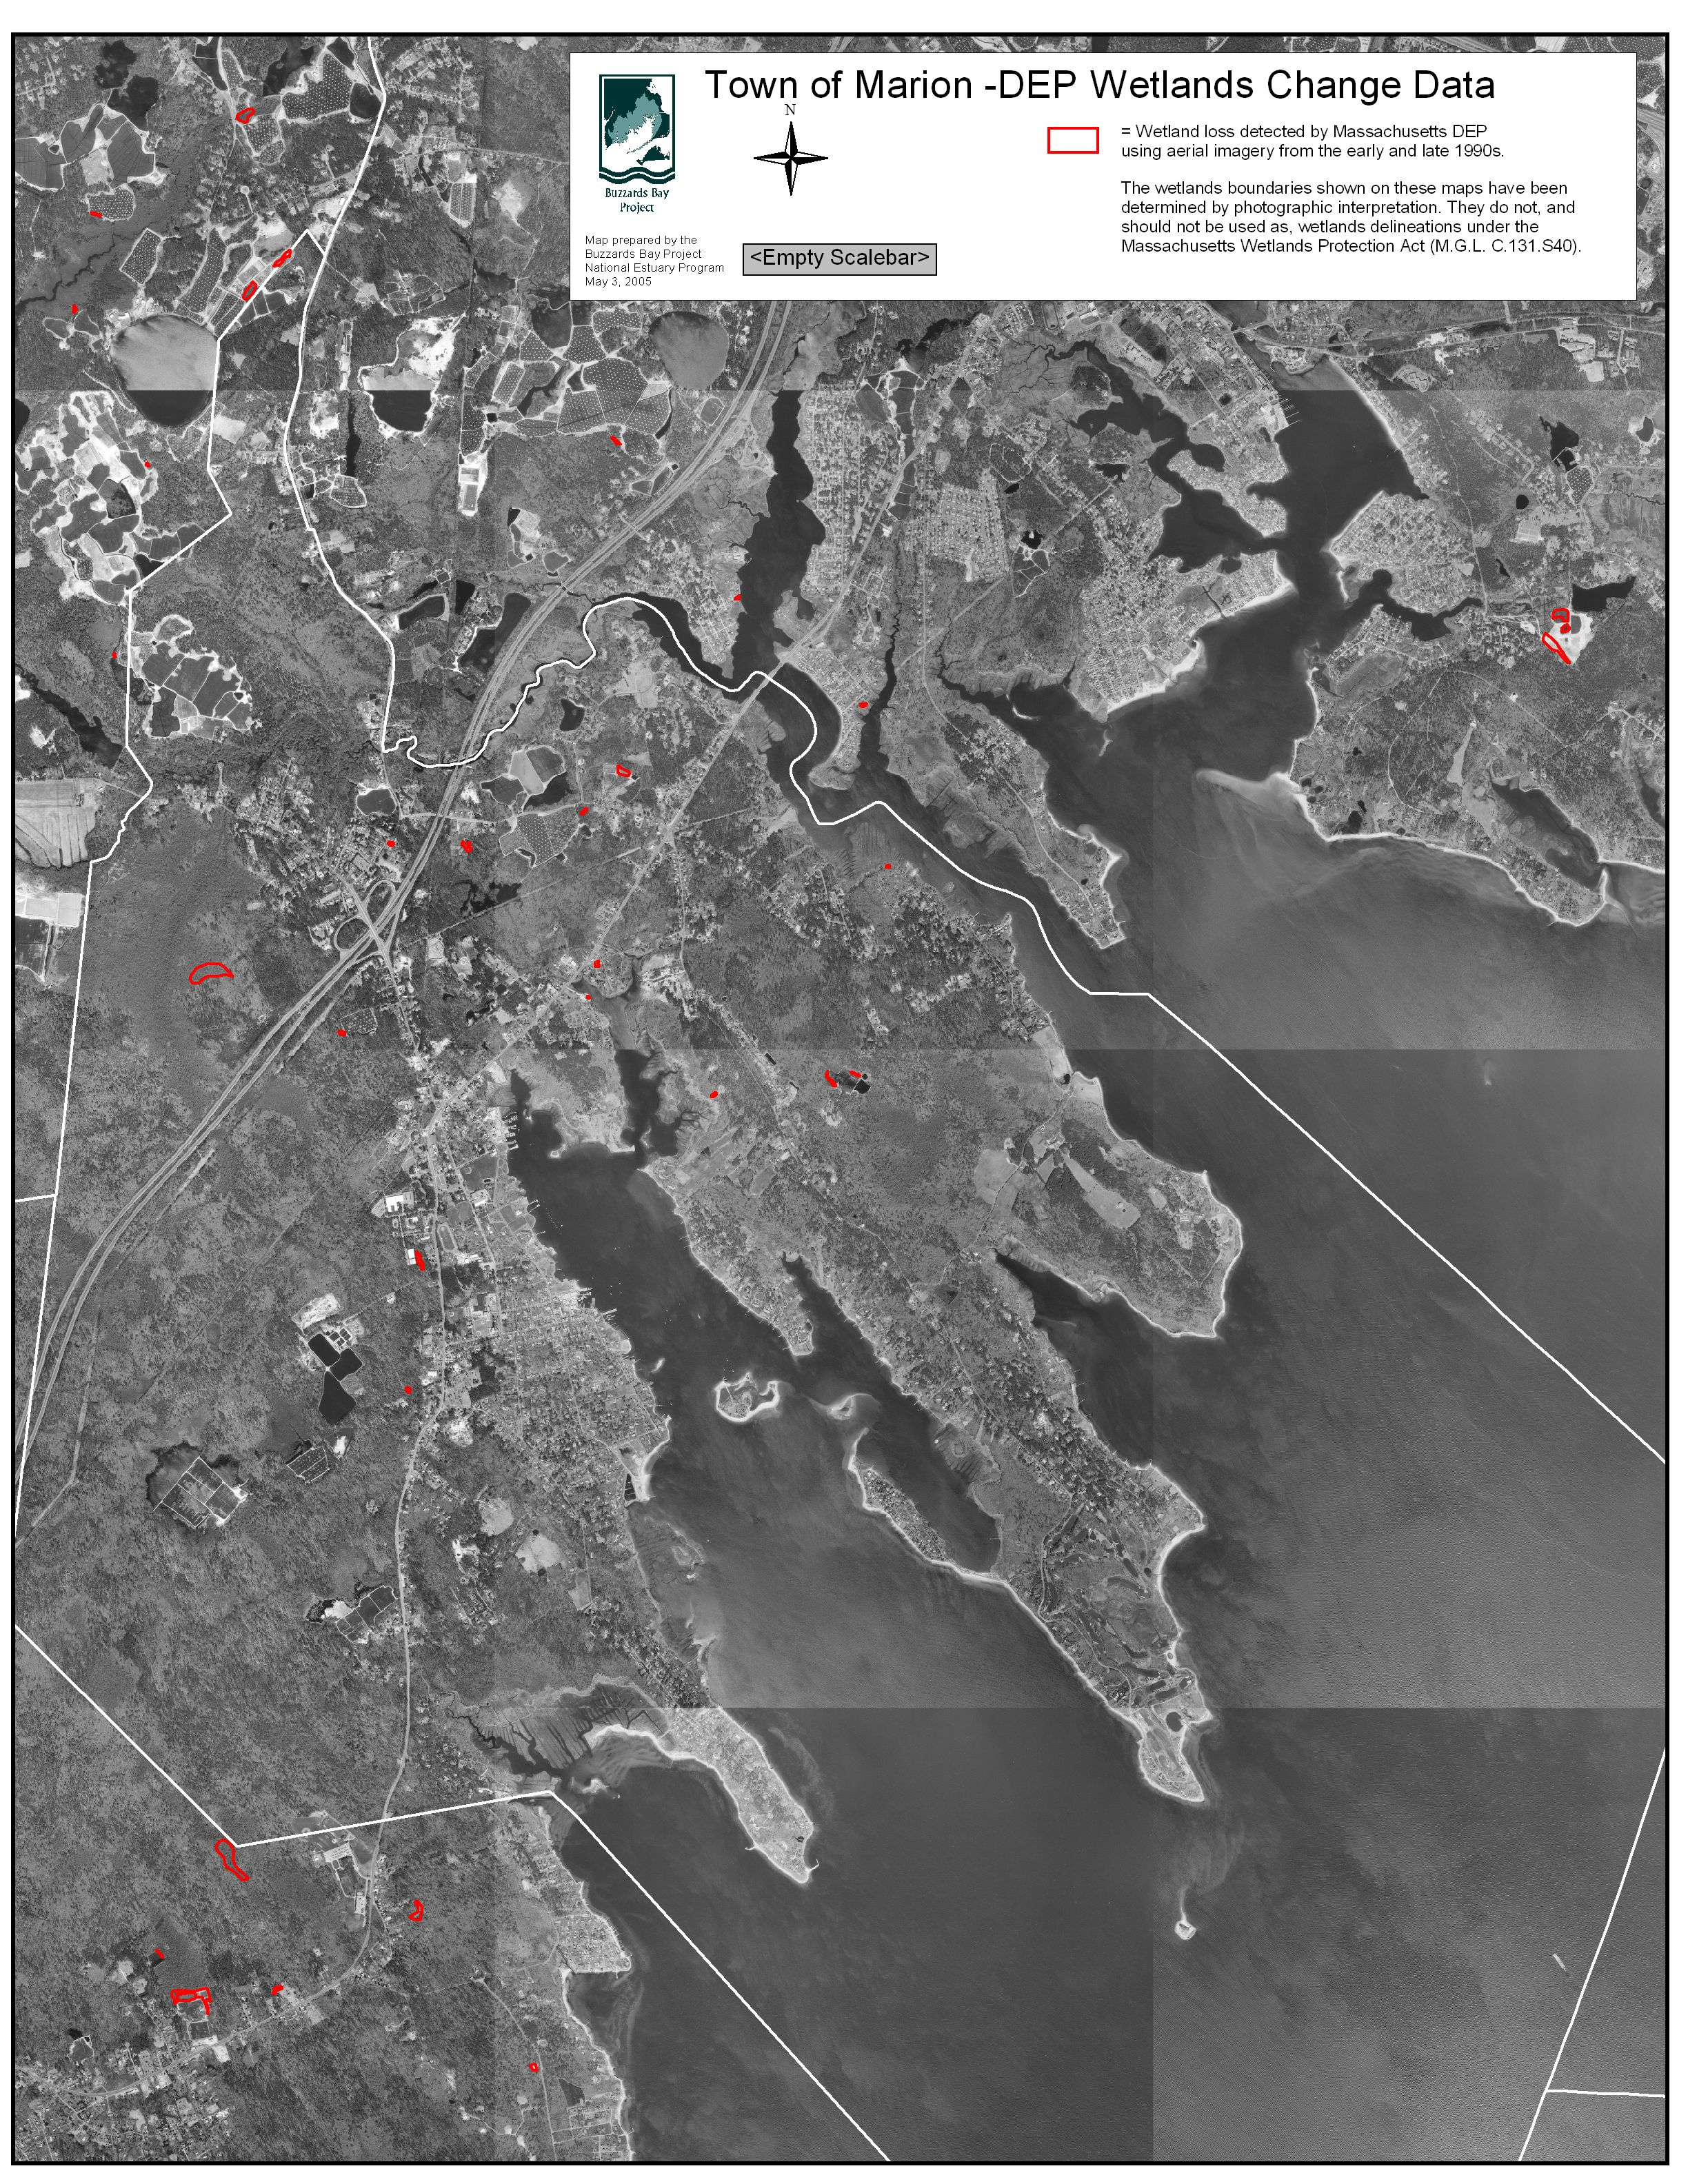 Town Of Marion Wetland Loss Map